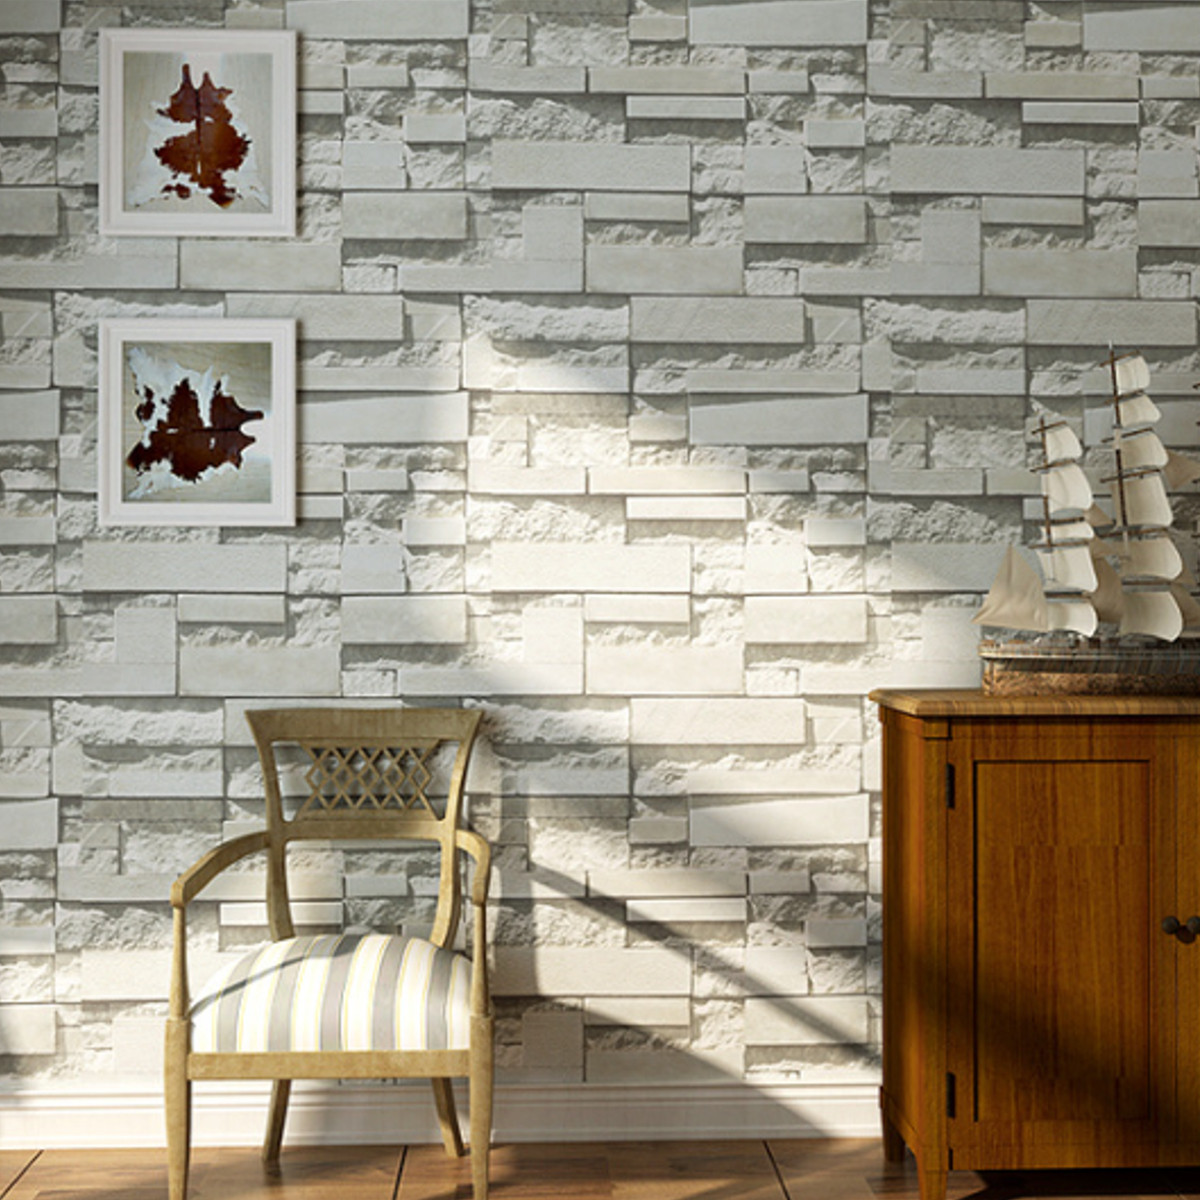 3d brick stone embossed textured home wallpaper wall paper rolls room decor 10m ebay. Black Bedroom Furniture Sets. Home Design Ideas